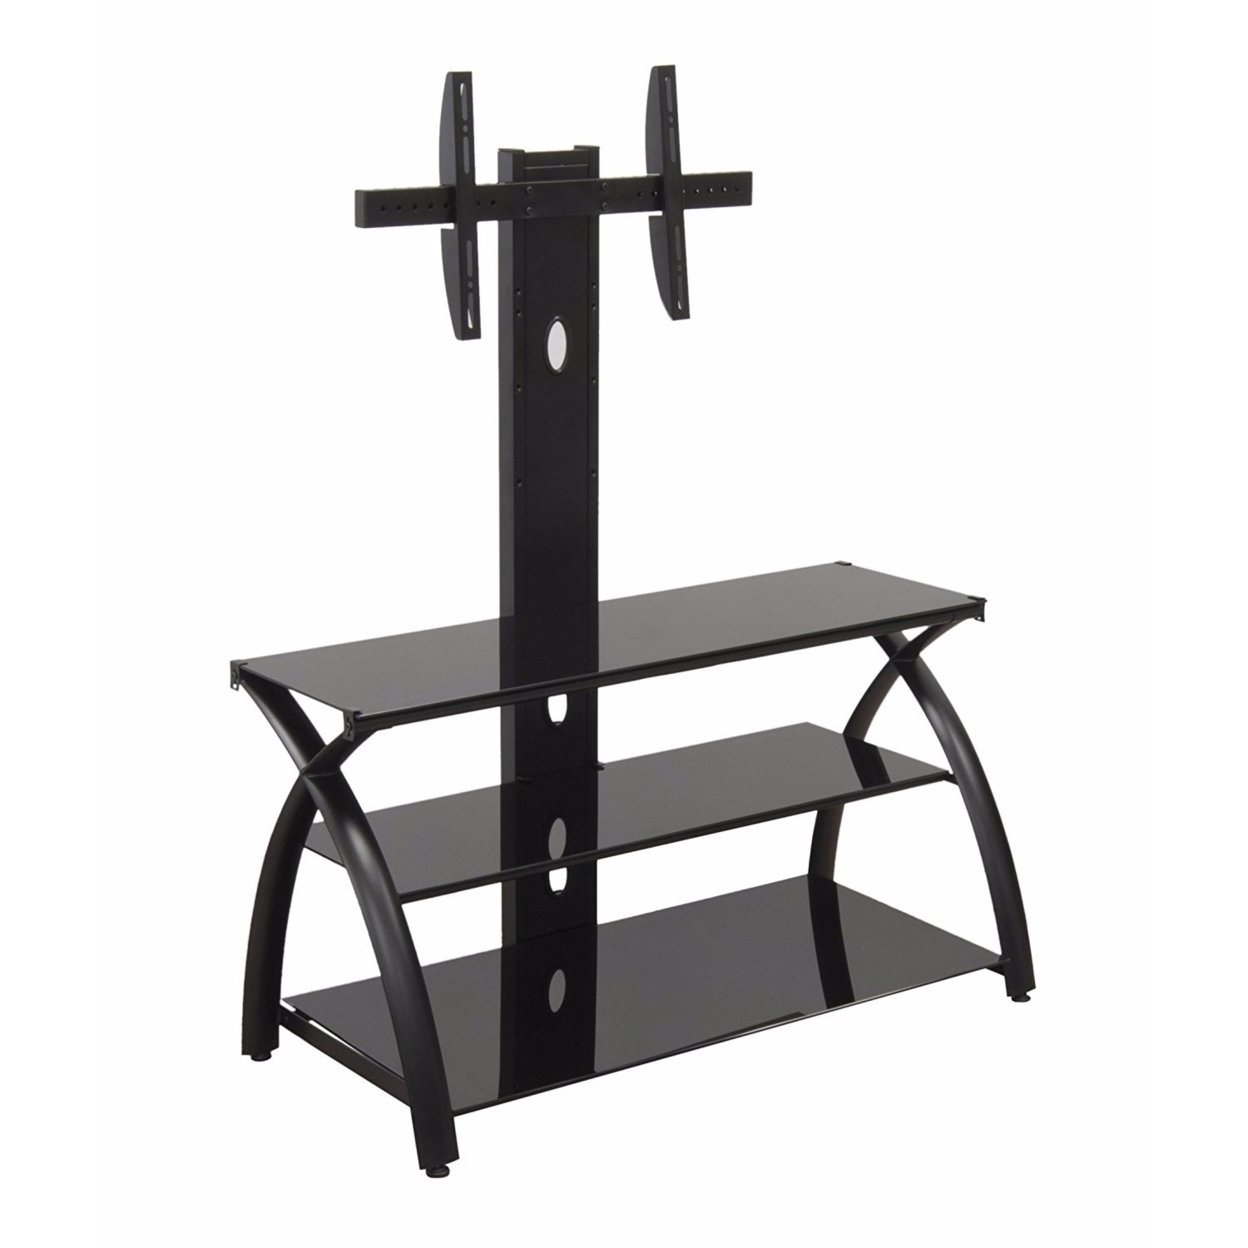 Offex Home Office Futura TV Stand with Tower Glass - Black/Black